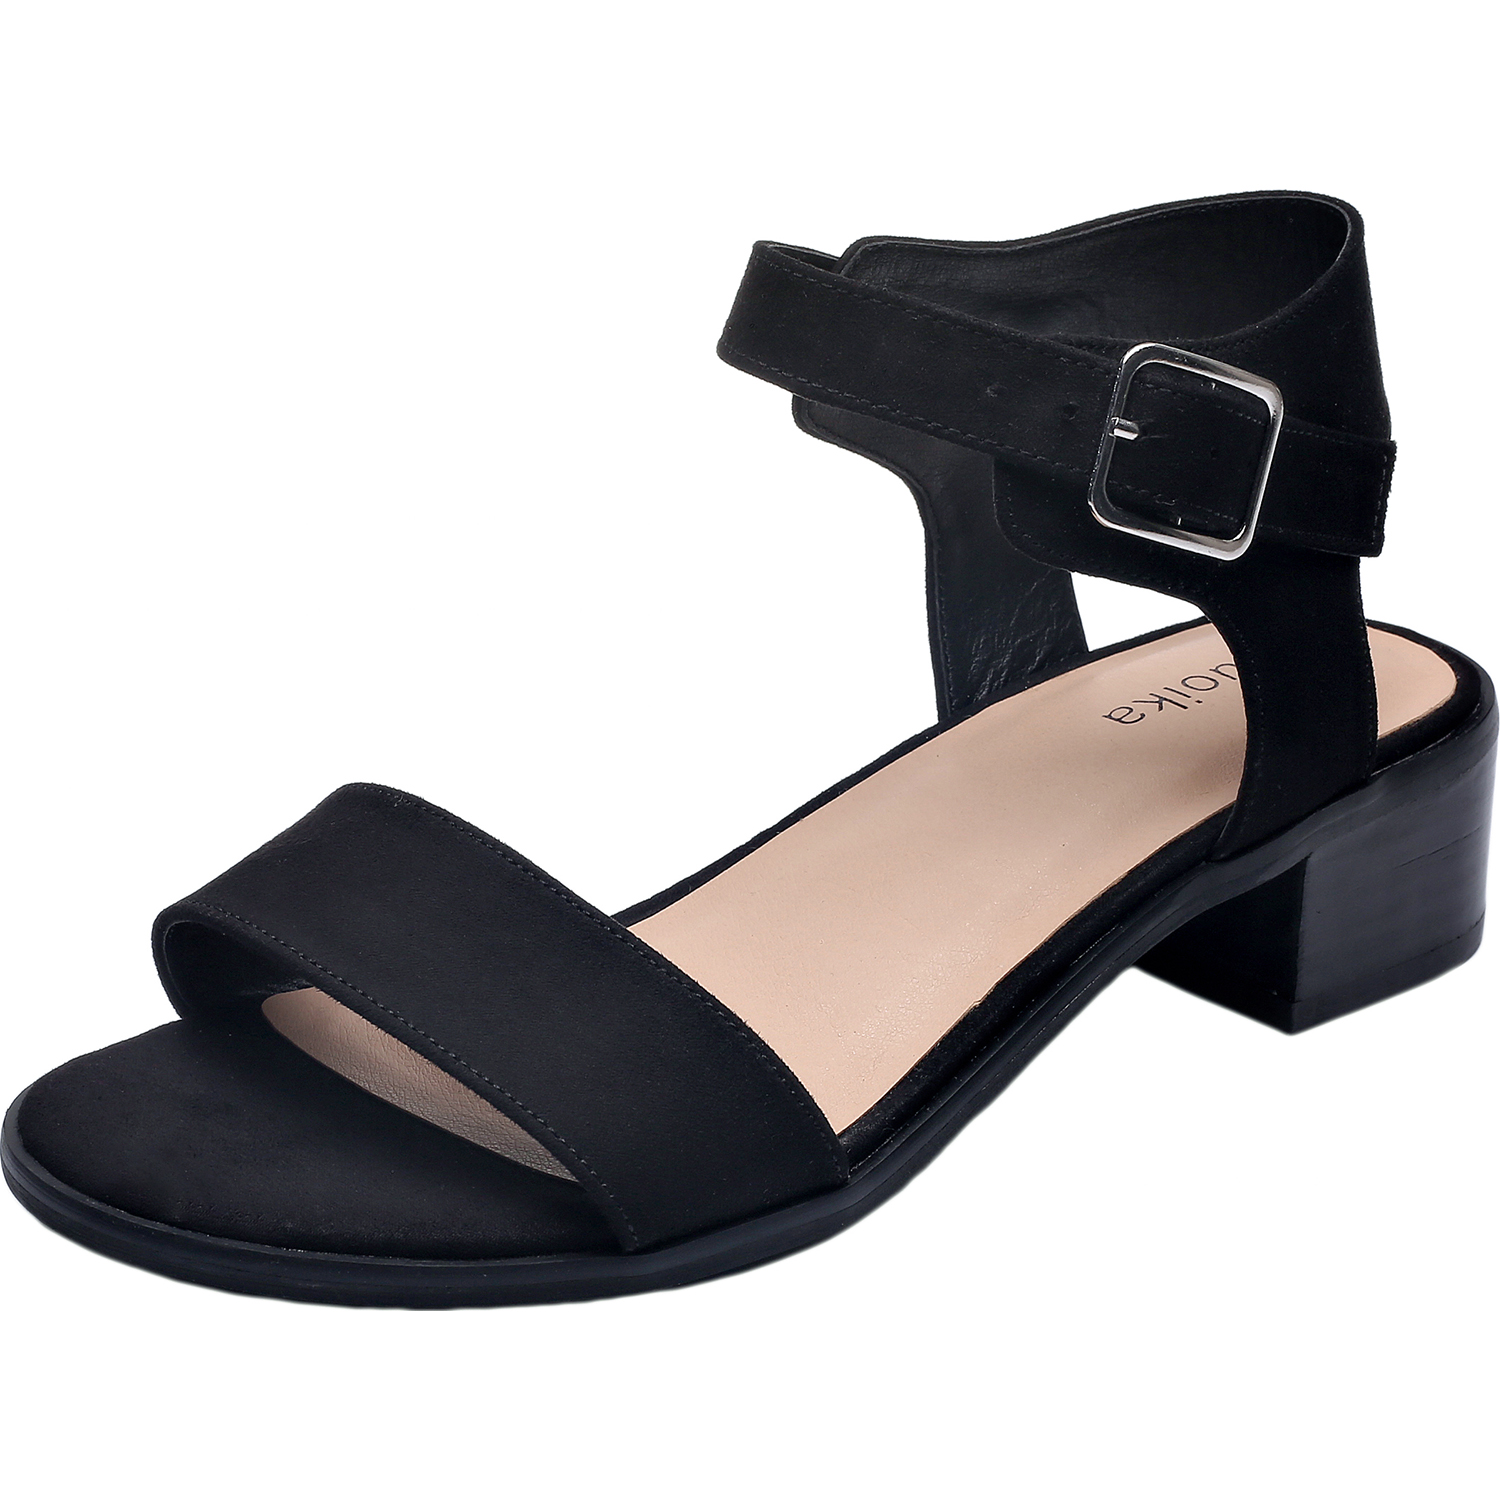 4b560e3a24fa2 US$ 29.99 - Luoika Women's Wide Width Heeled Sandals - Classic Low Block  Heel Open Toe Ankle Strap Suede Summer Shoes. - www.luoika-us.com